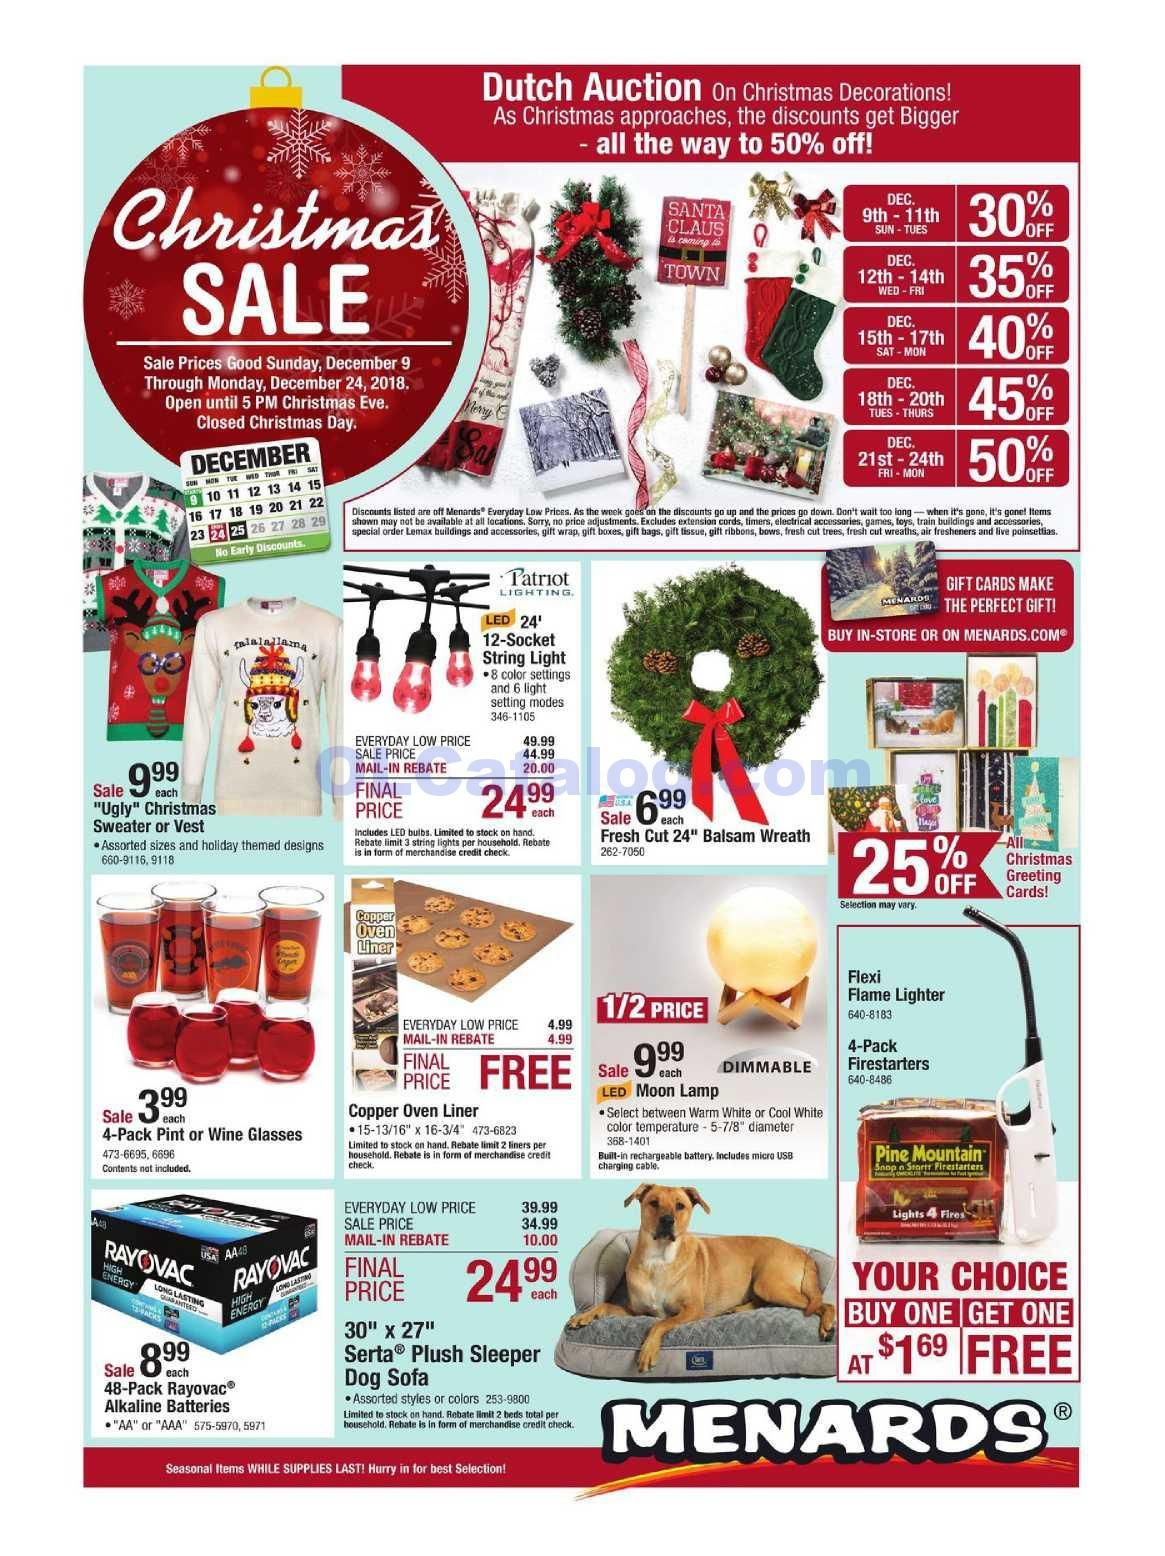 Menards Weekly ad December 9 – 24, 2018  View the Latest